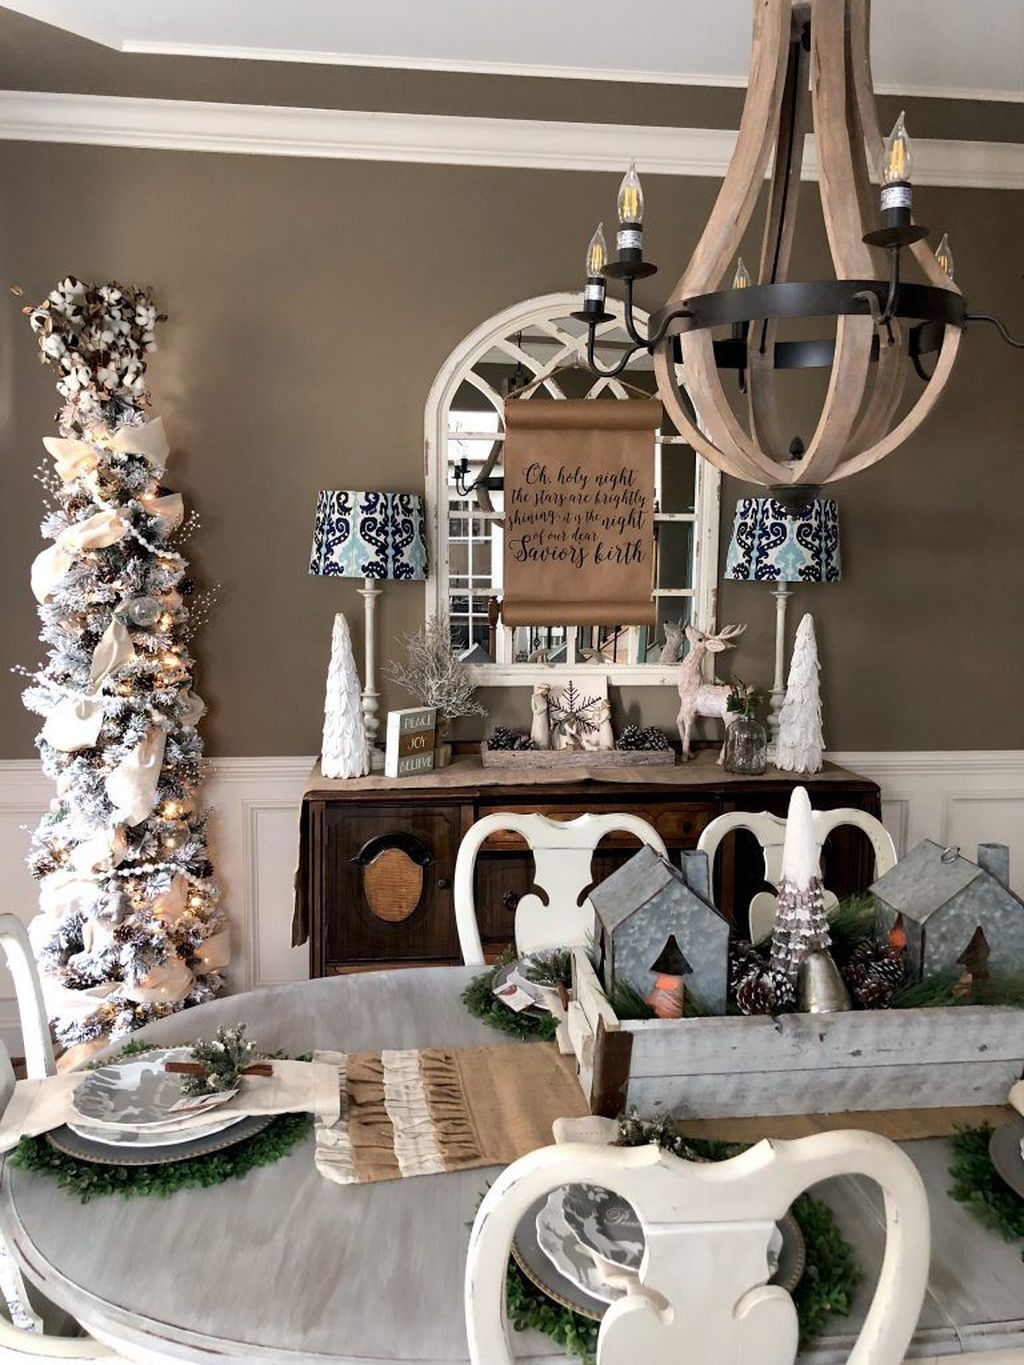 Beautiful Christmas Dining Room Decor Ideas You Never Seen Before 18